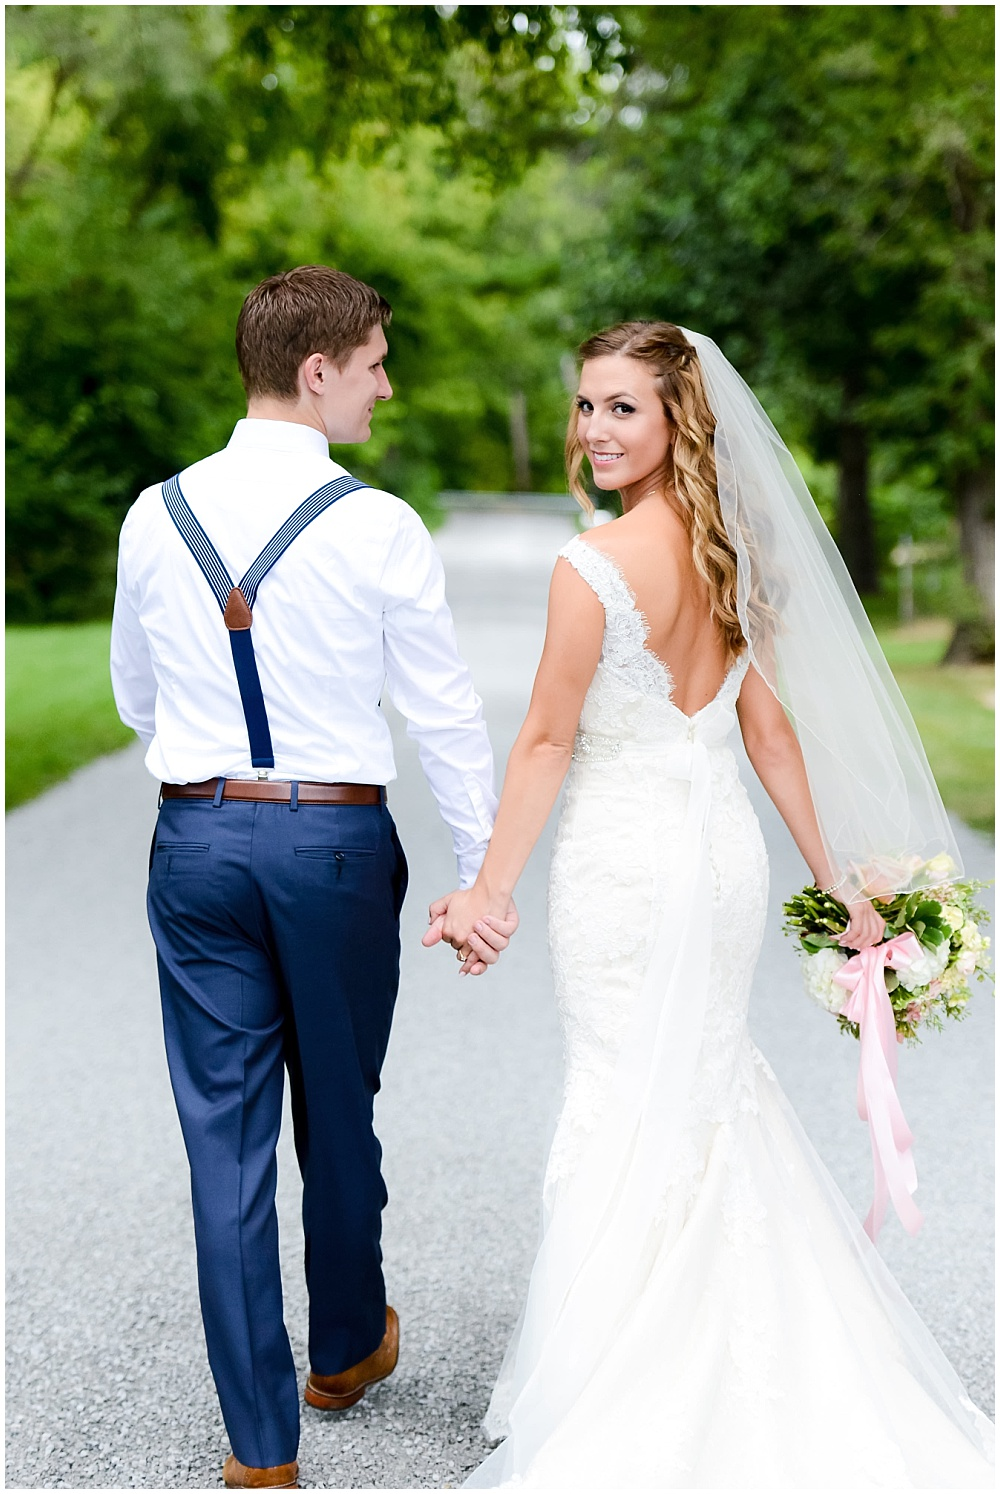 Back of lace wedding dress with groom's navy suspenders | Mustard Seed Gardens Wedding by Sara Ackermann Photography & Jessica Dum Wedding Coordination